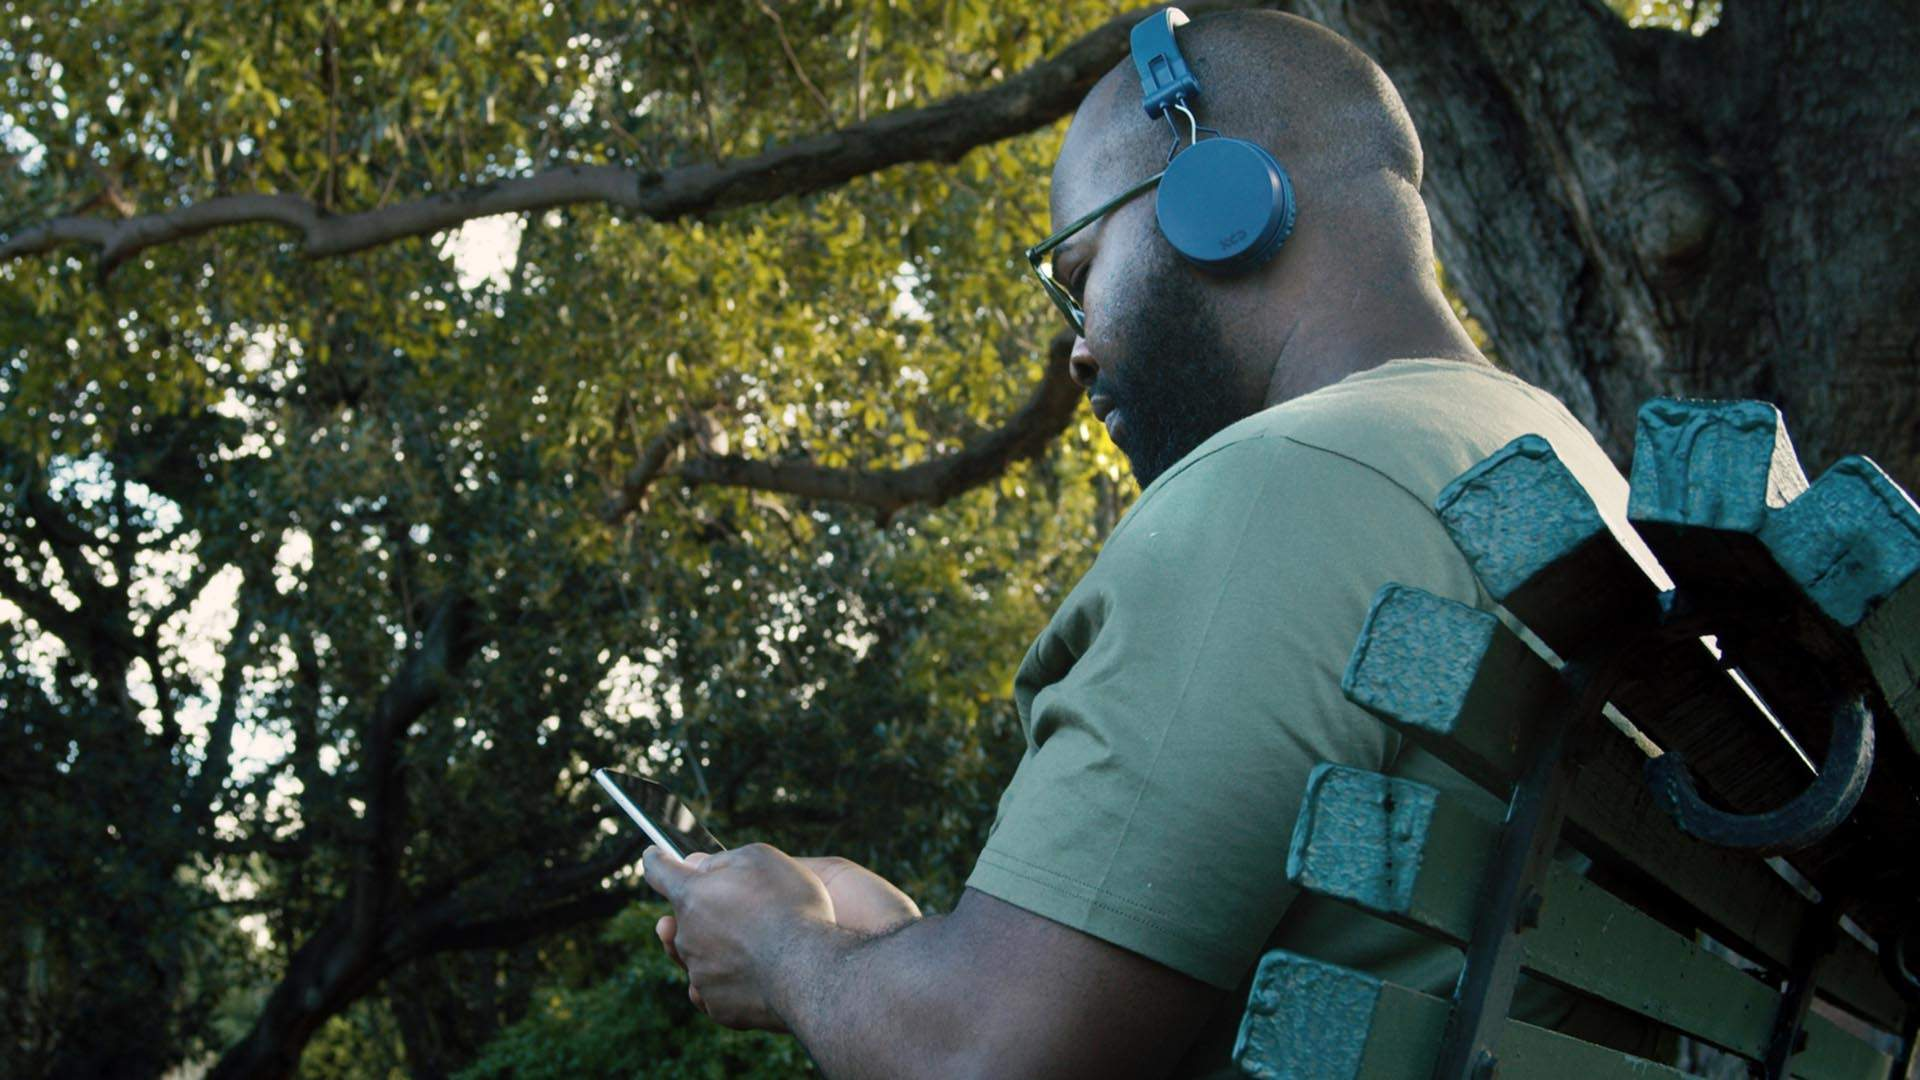 Darkfield's Next At-Home Audio Experience Will Get You Listening to a Creepy Story on a Park Bench